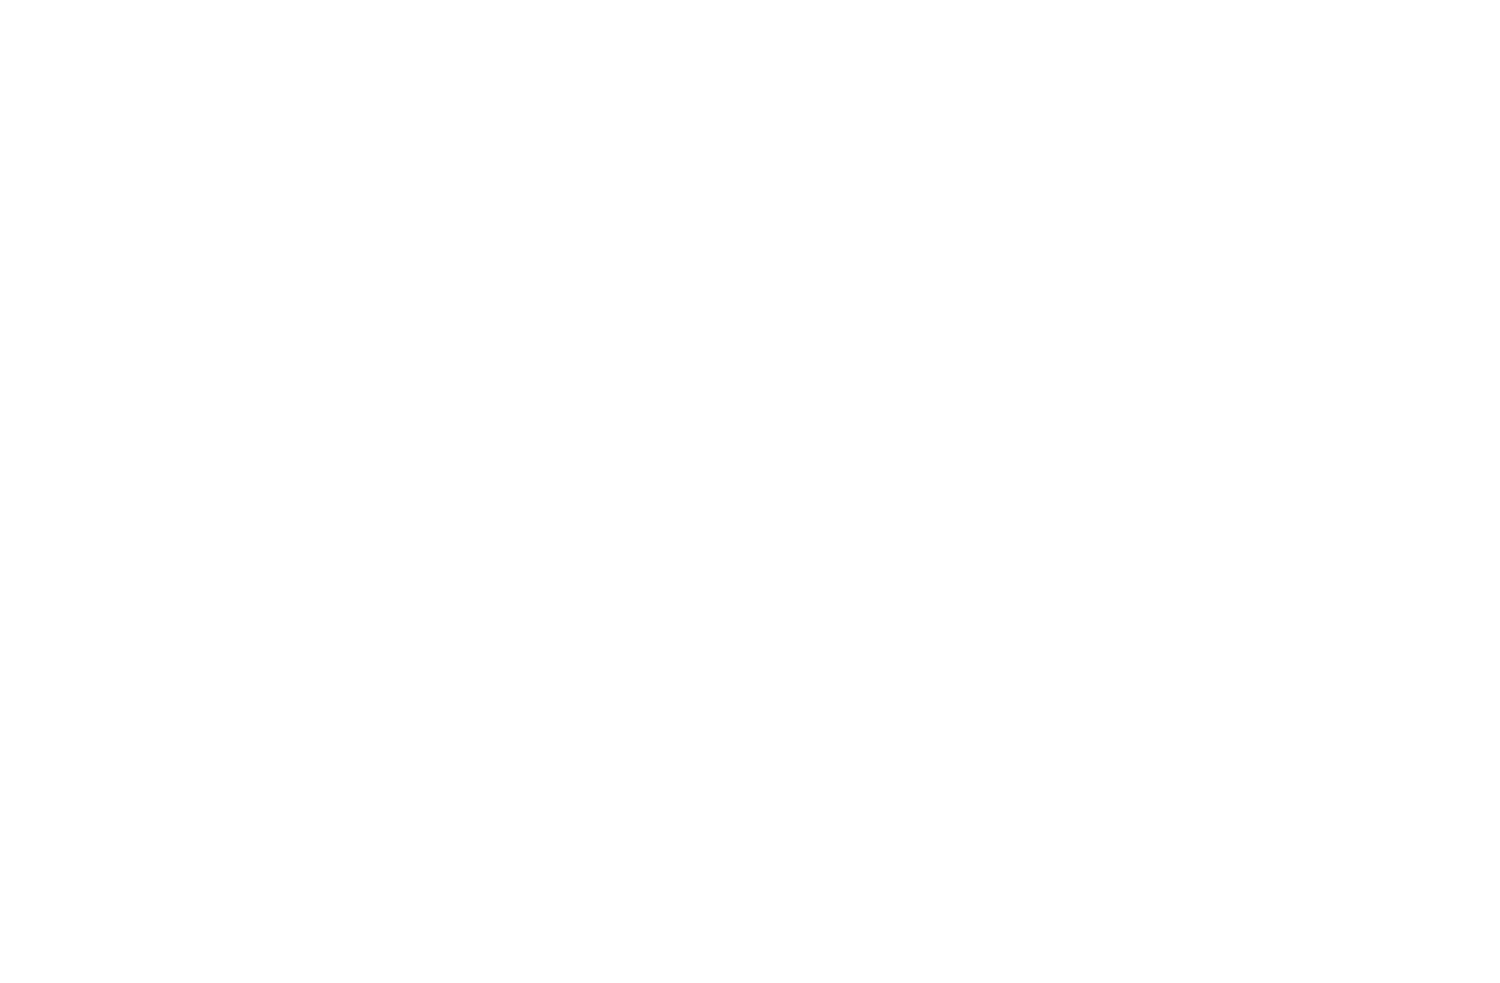 Alex Wood Photography